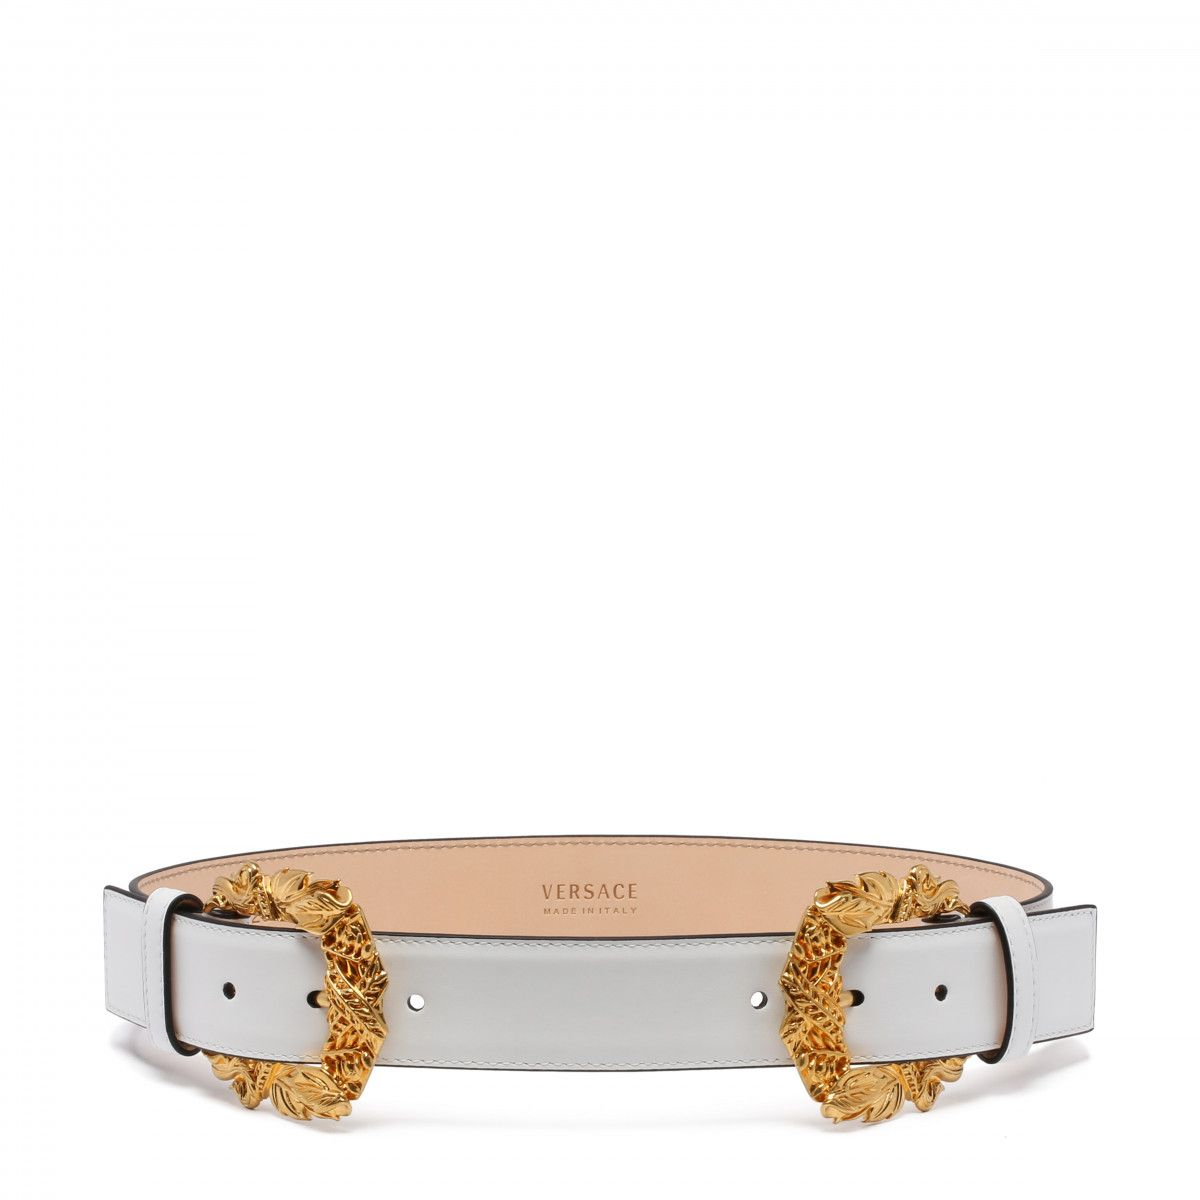 6e04811ea0 Double baroque buckle white tribute belt - ANTONIA | STYLE | Pinterest